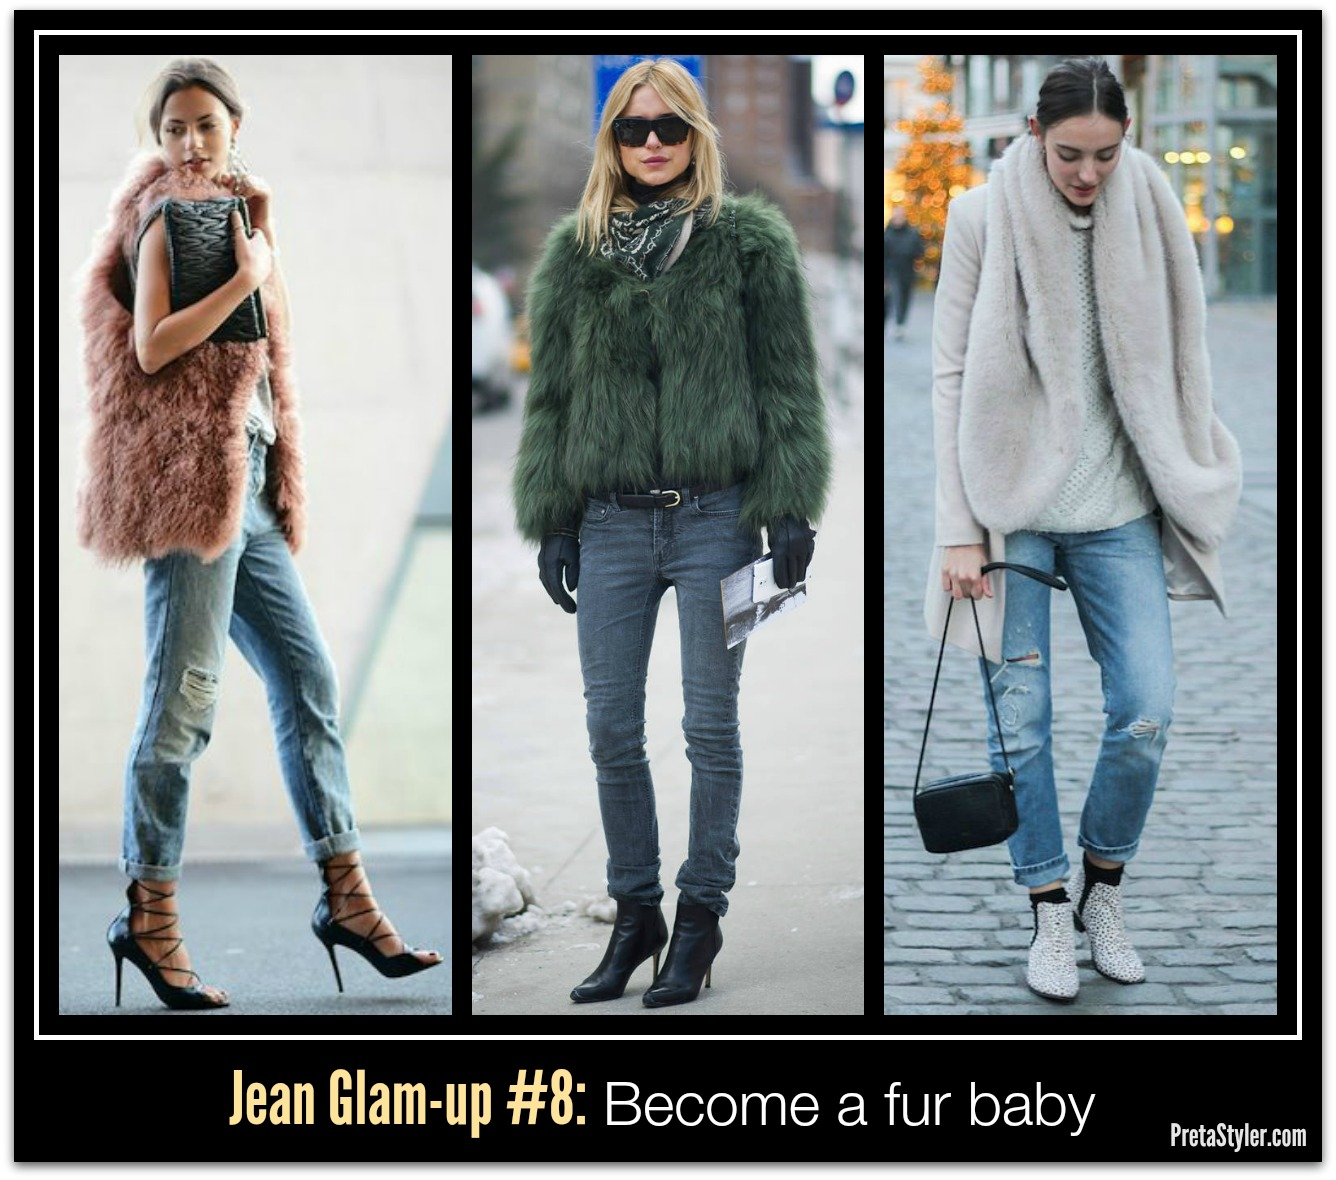 How to Glam-up Blue Jeans #8